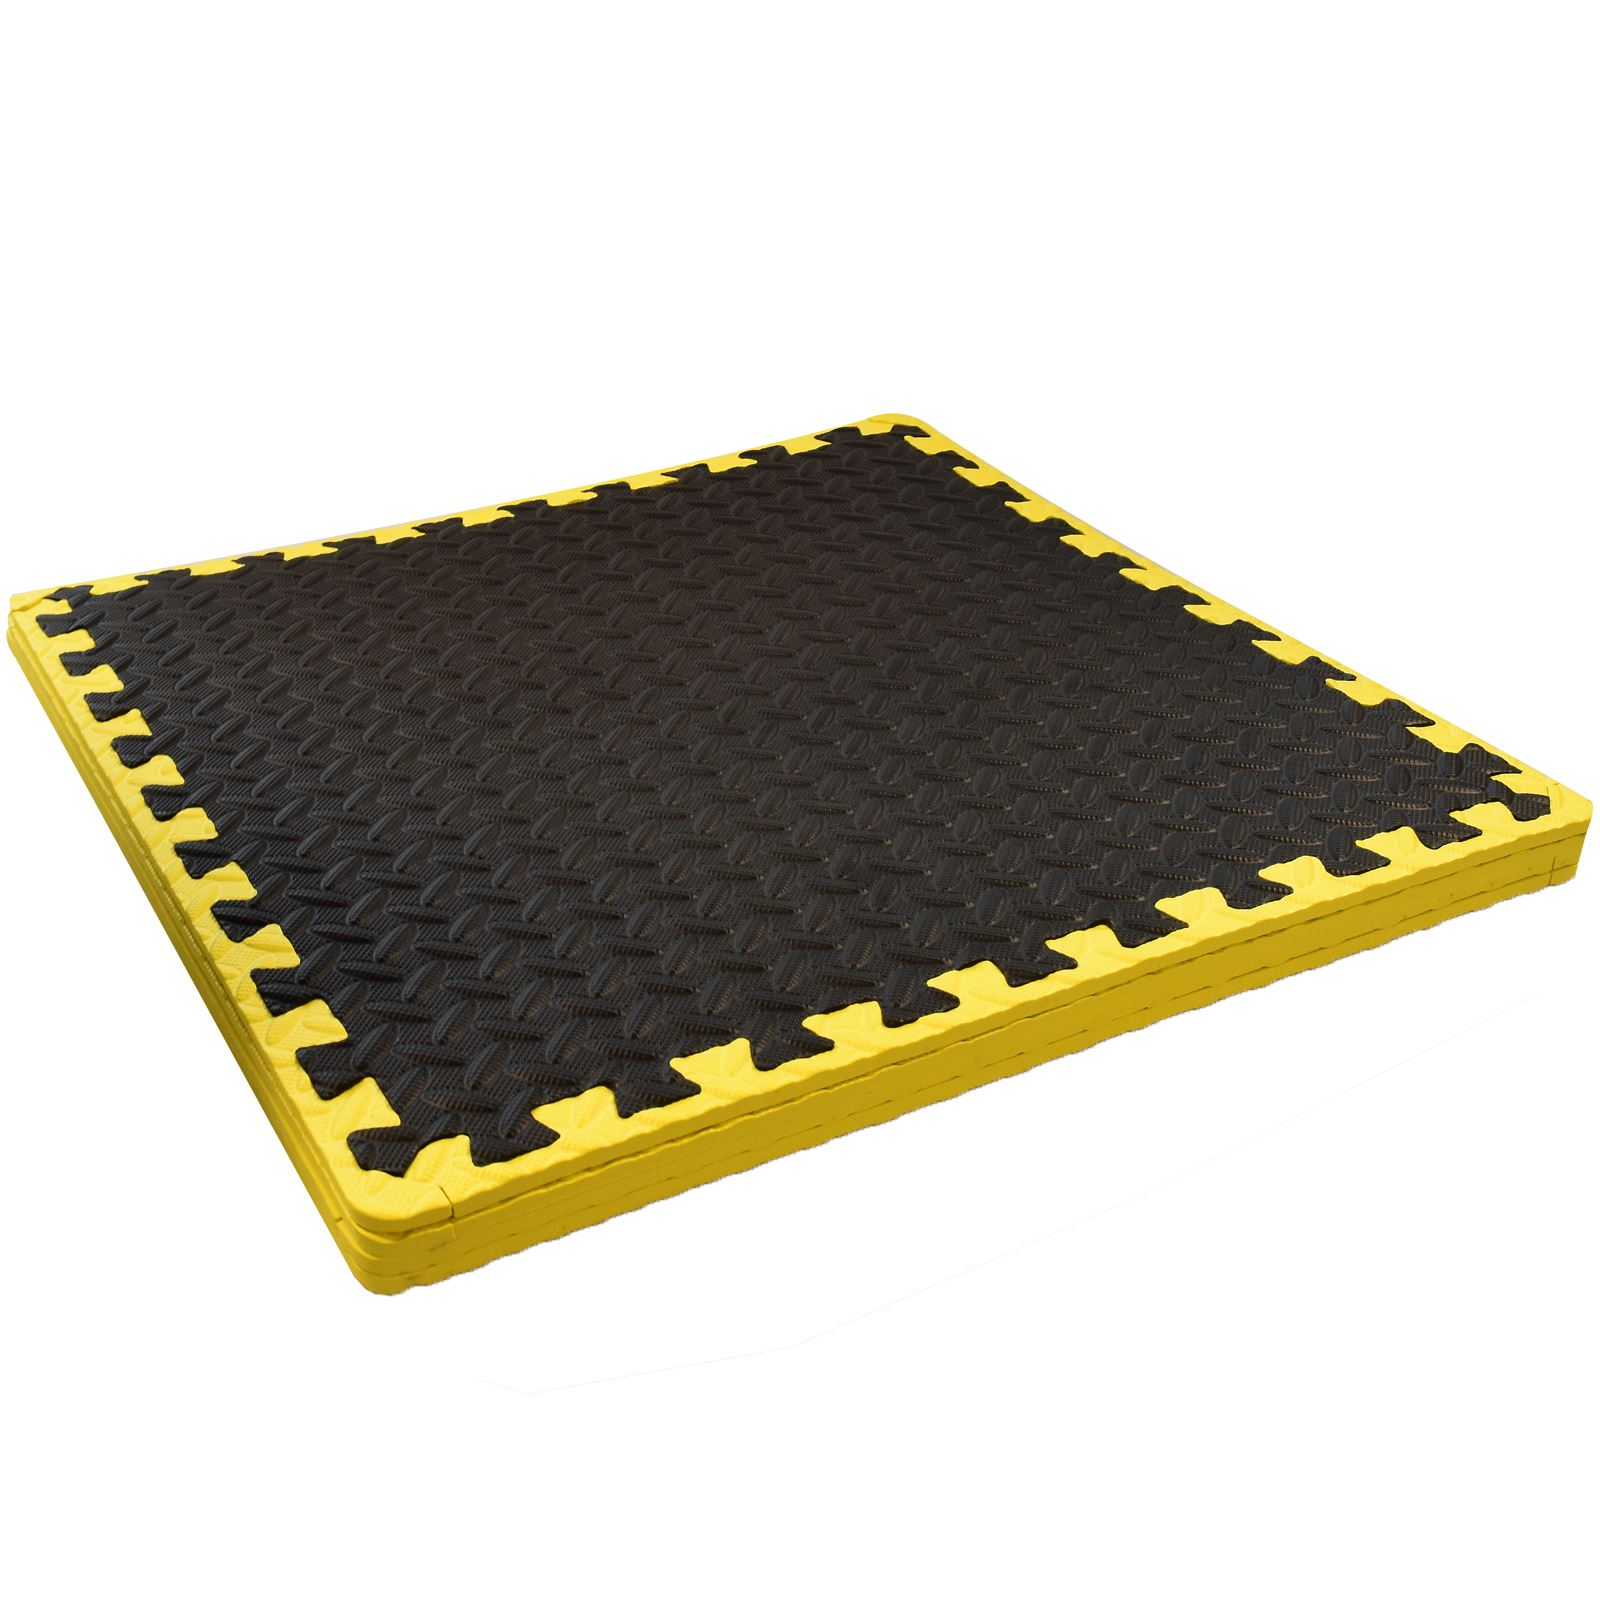 Interlocking Eva Floor Mat Soft Rubber Foam Tiles Exercise